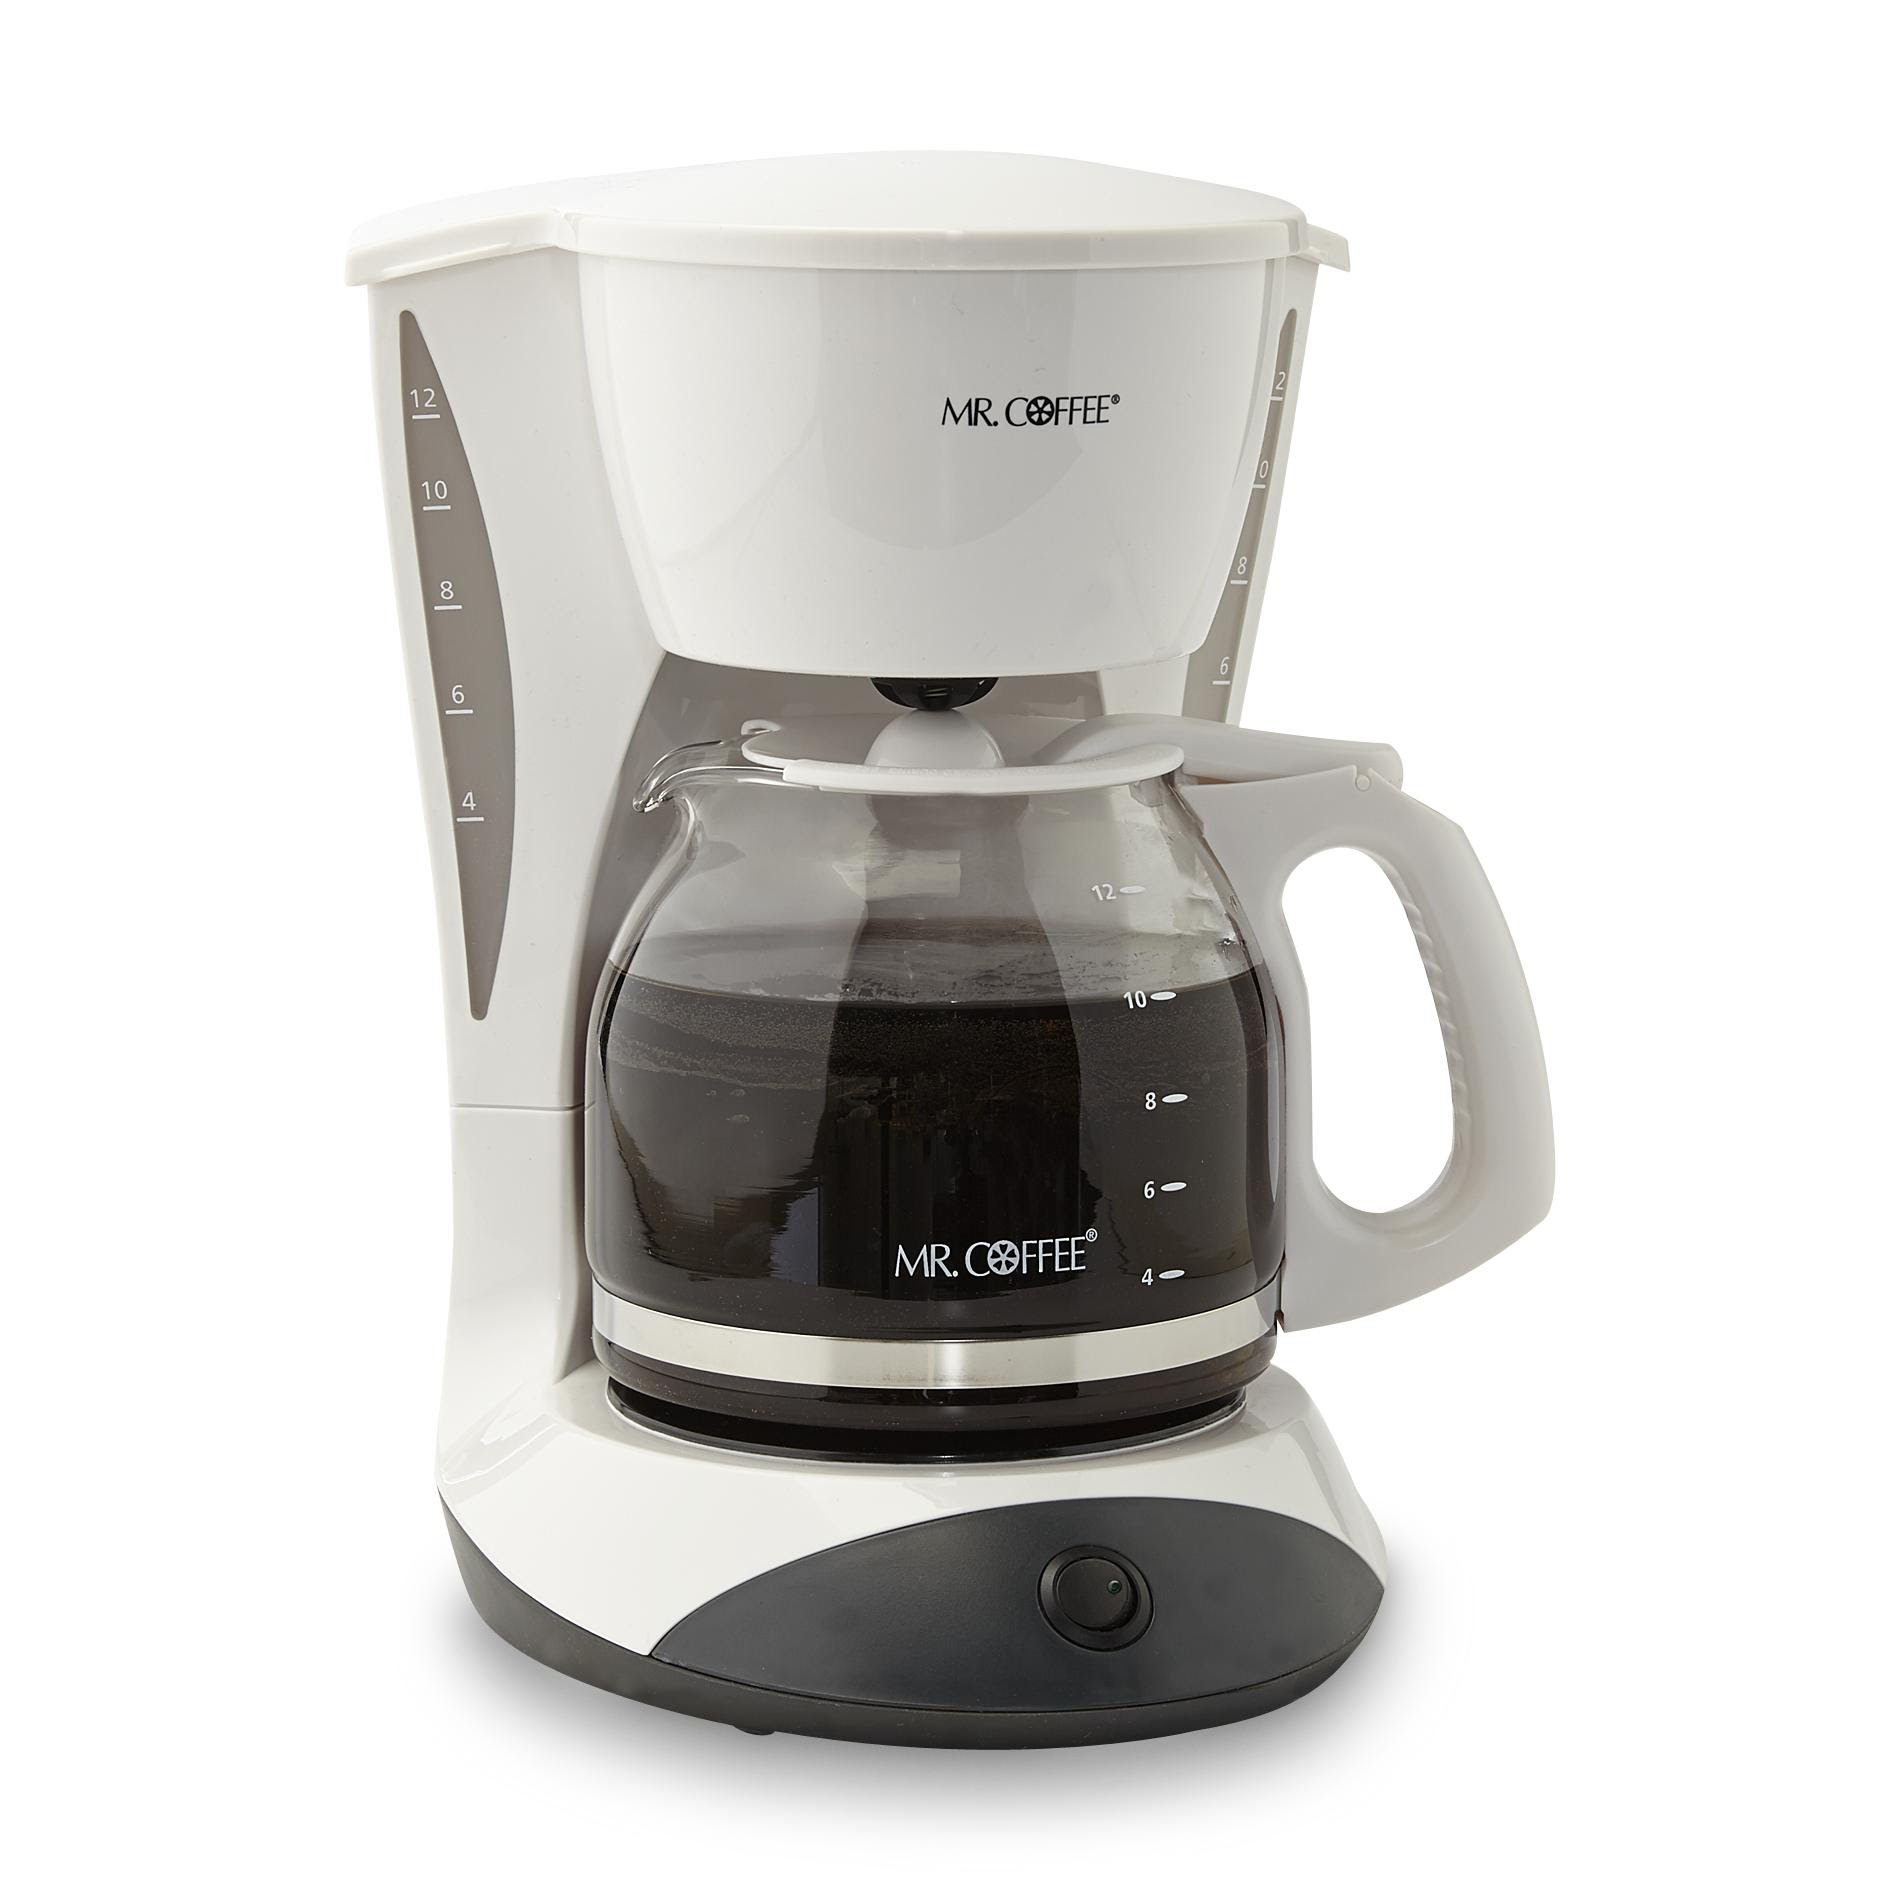 Mr. Coffee 12-Cup Coffee Maker - DW12-NP